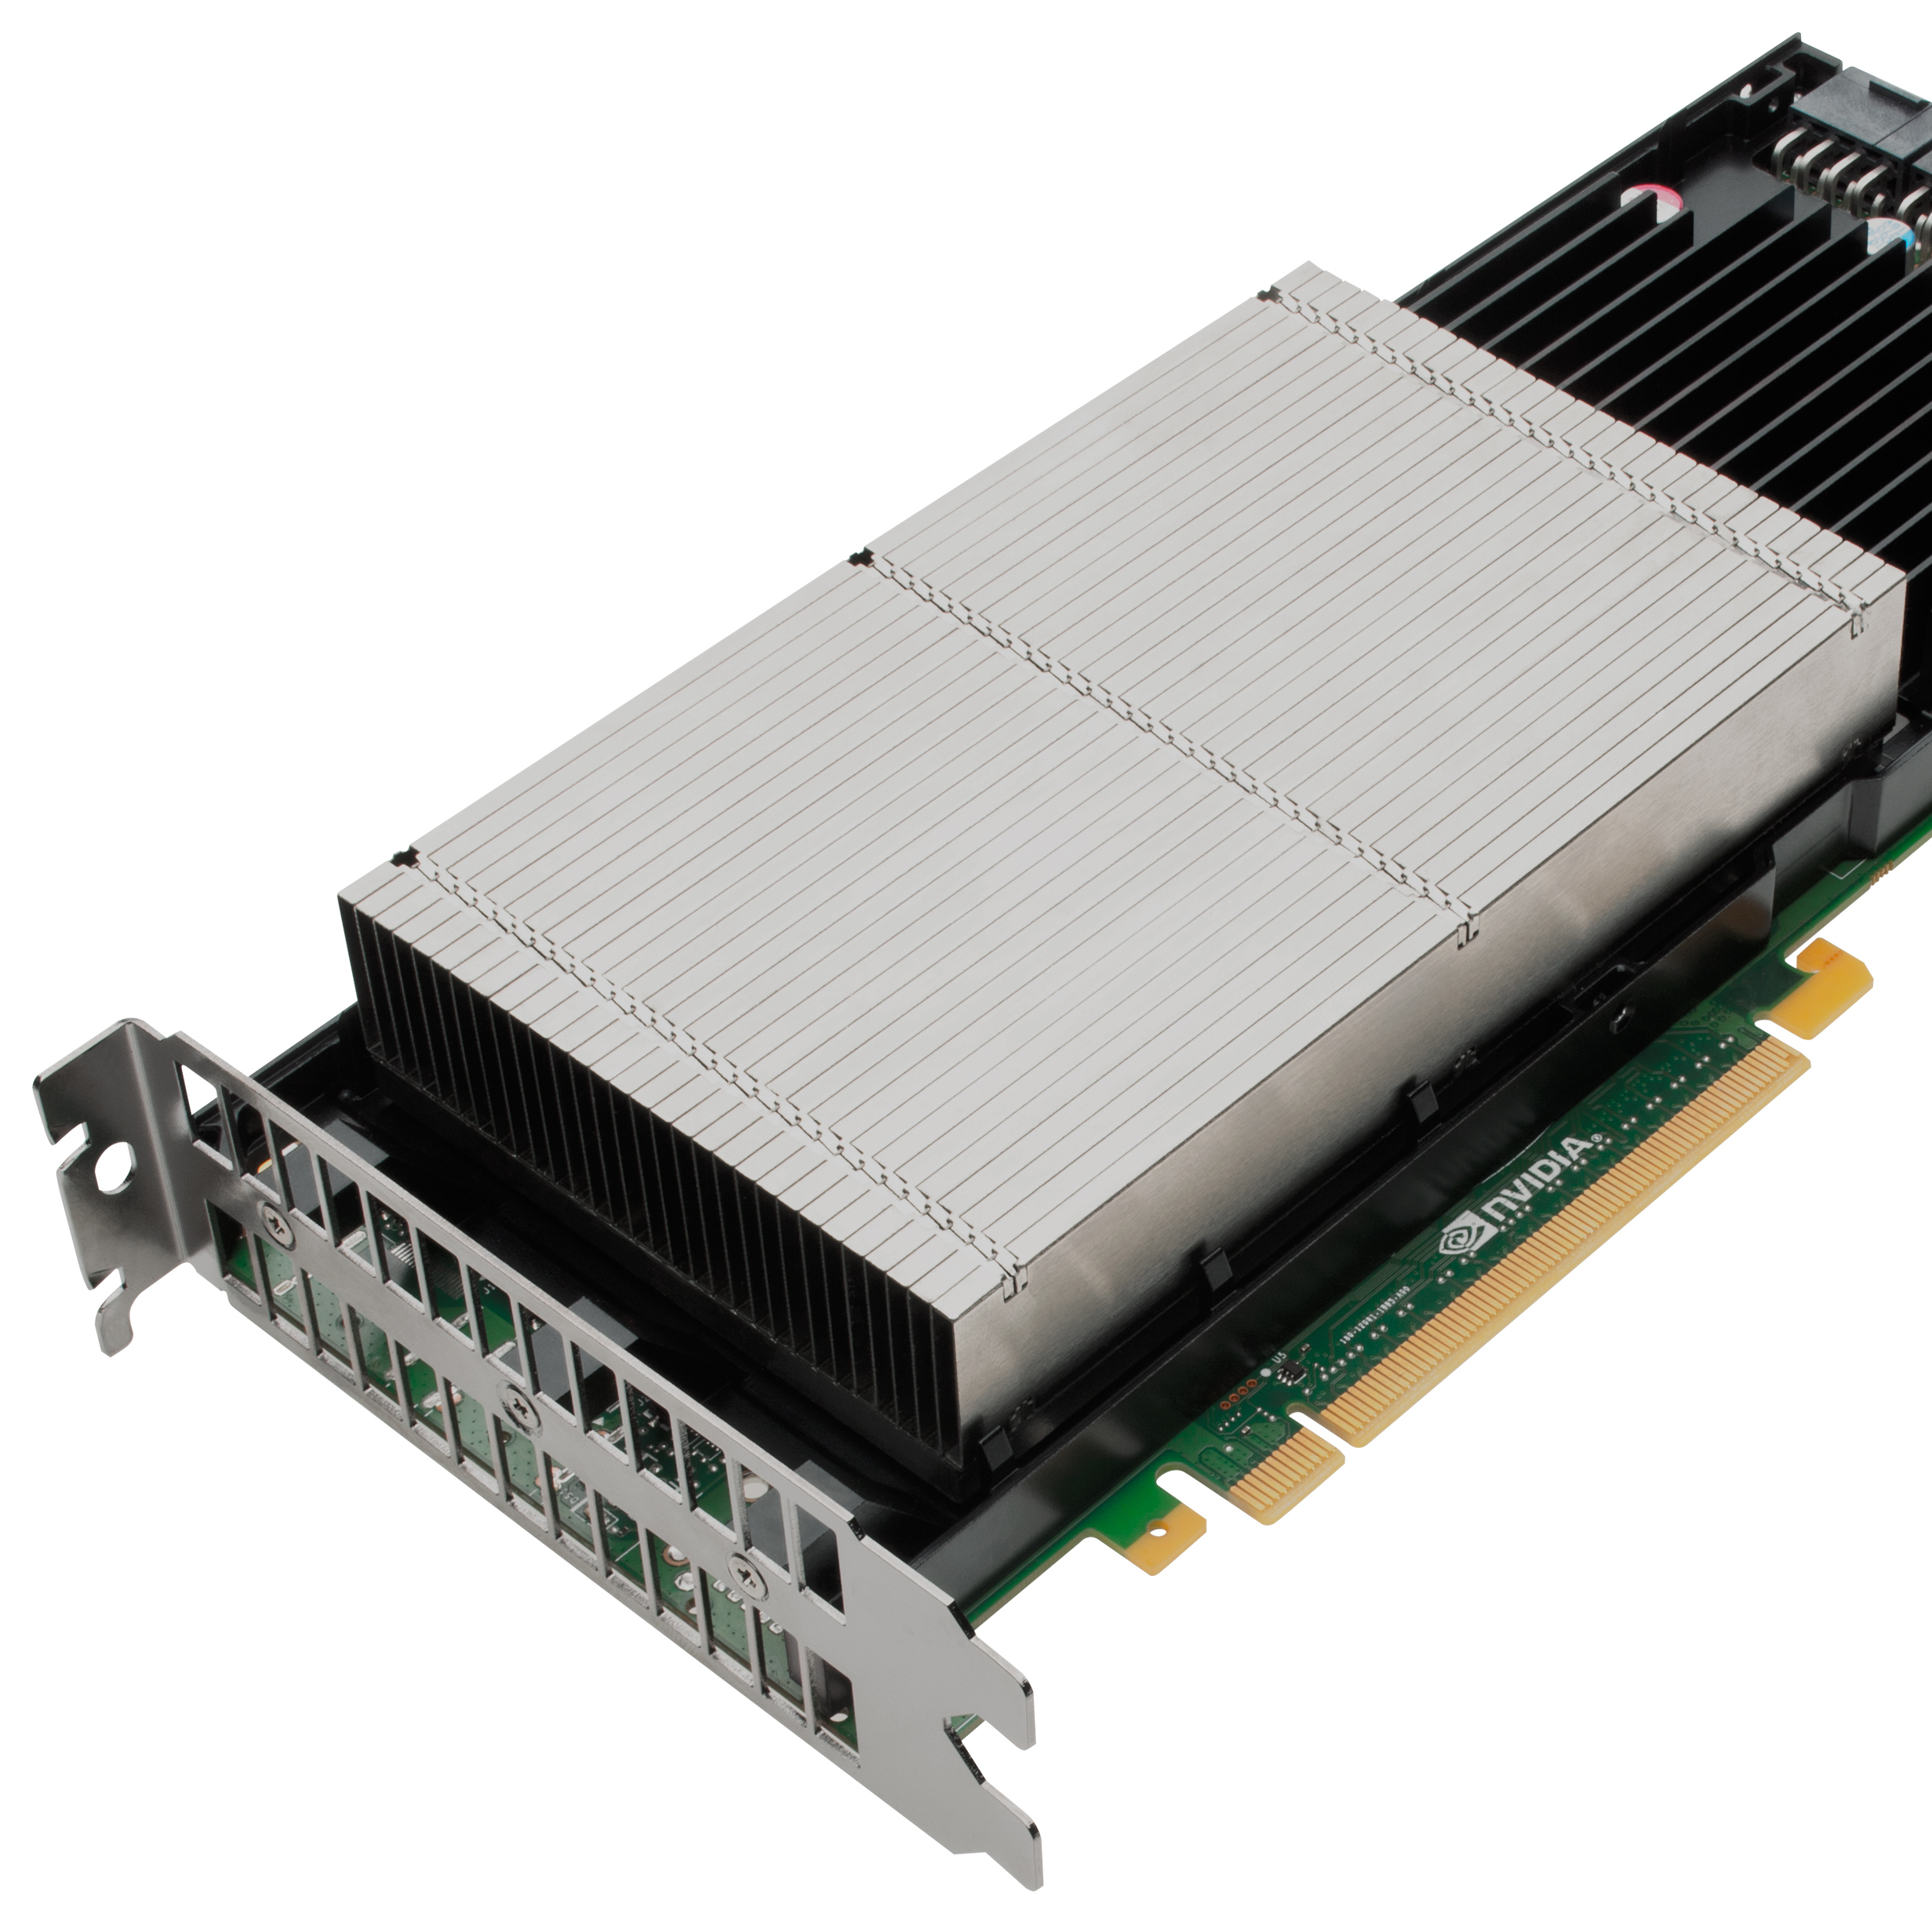 The Nvidia Tesla K20 GPU Accelerator powers the new Titan supercomputer. Its design is based on chips built for gaming.